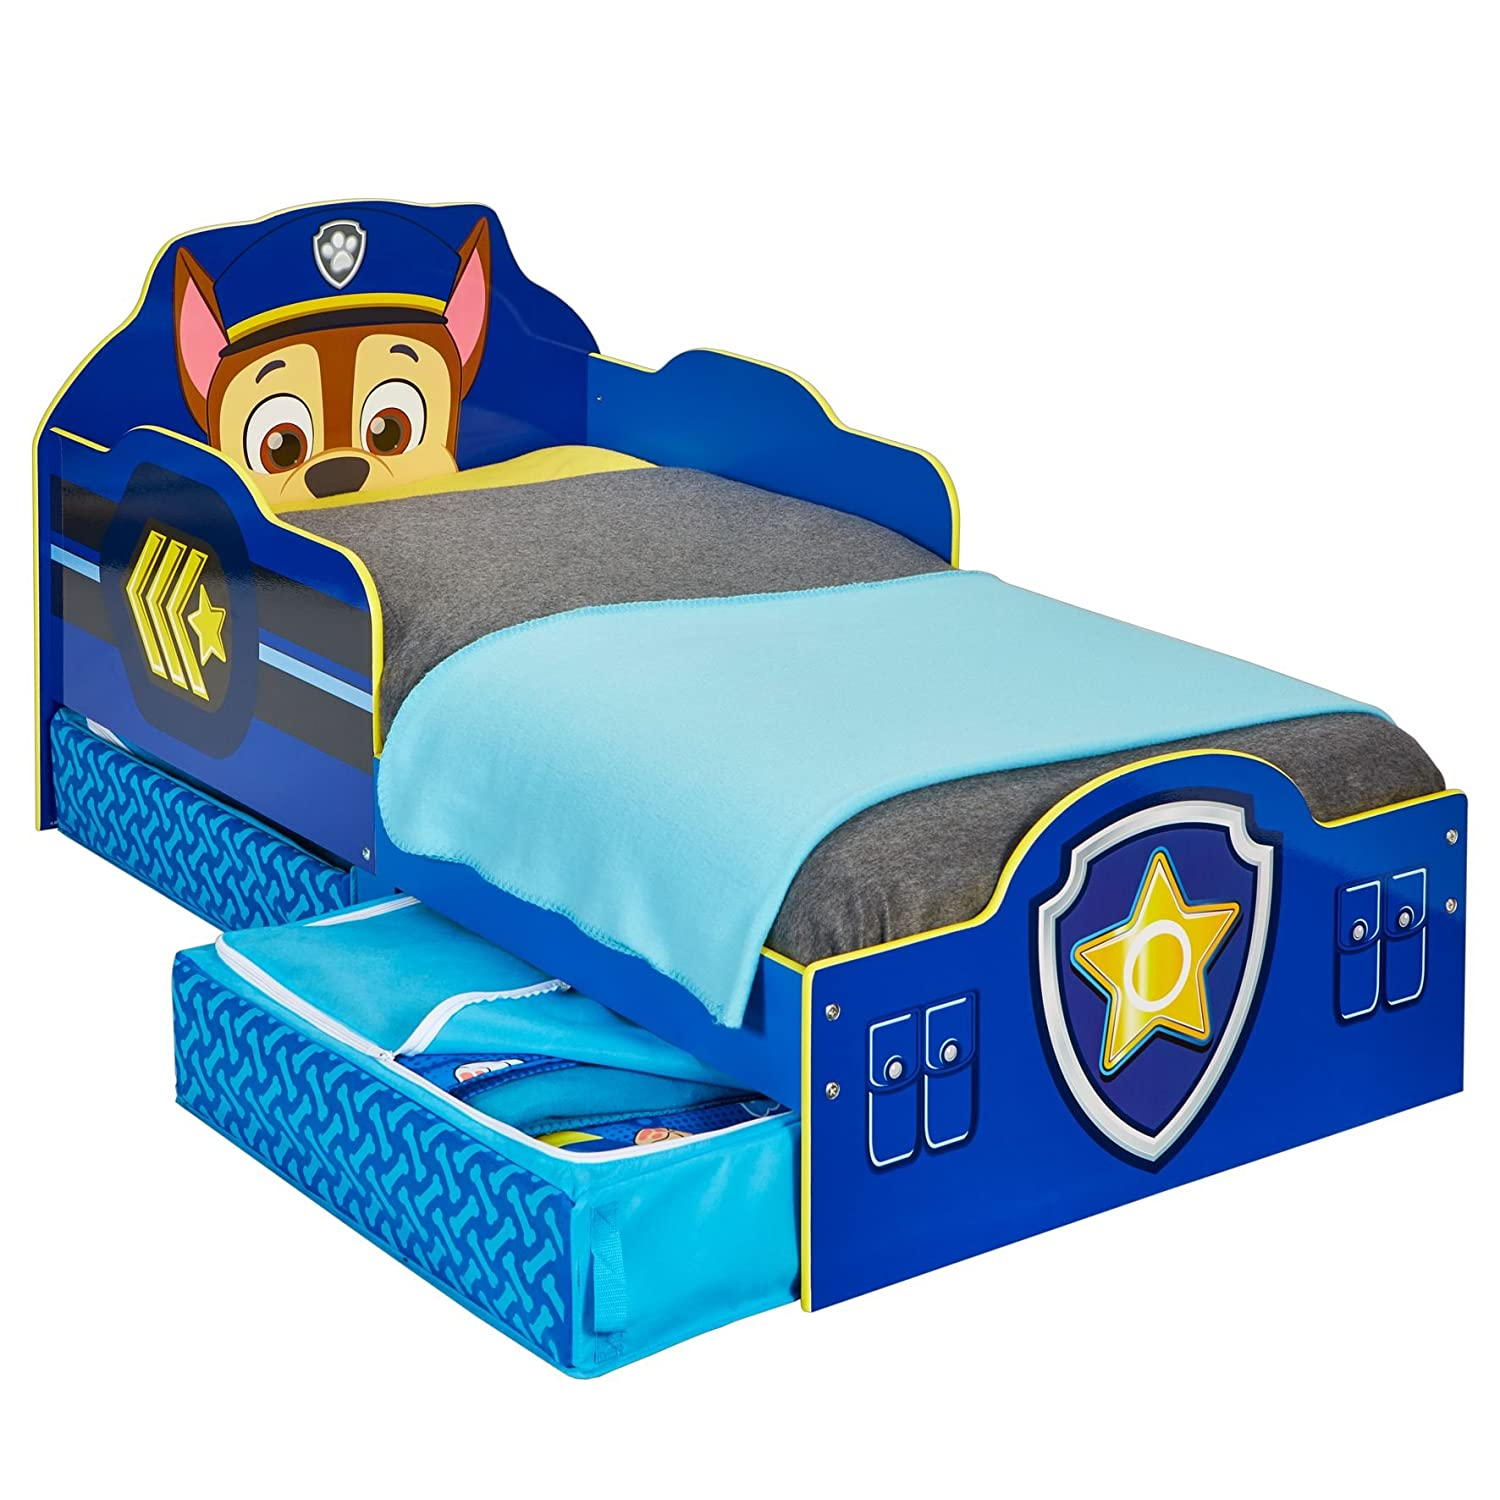 Paw Patrol Chase Kids Toddler Bed with Underbed Storage by HelloHome Worlds Apart 509PWP